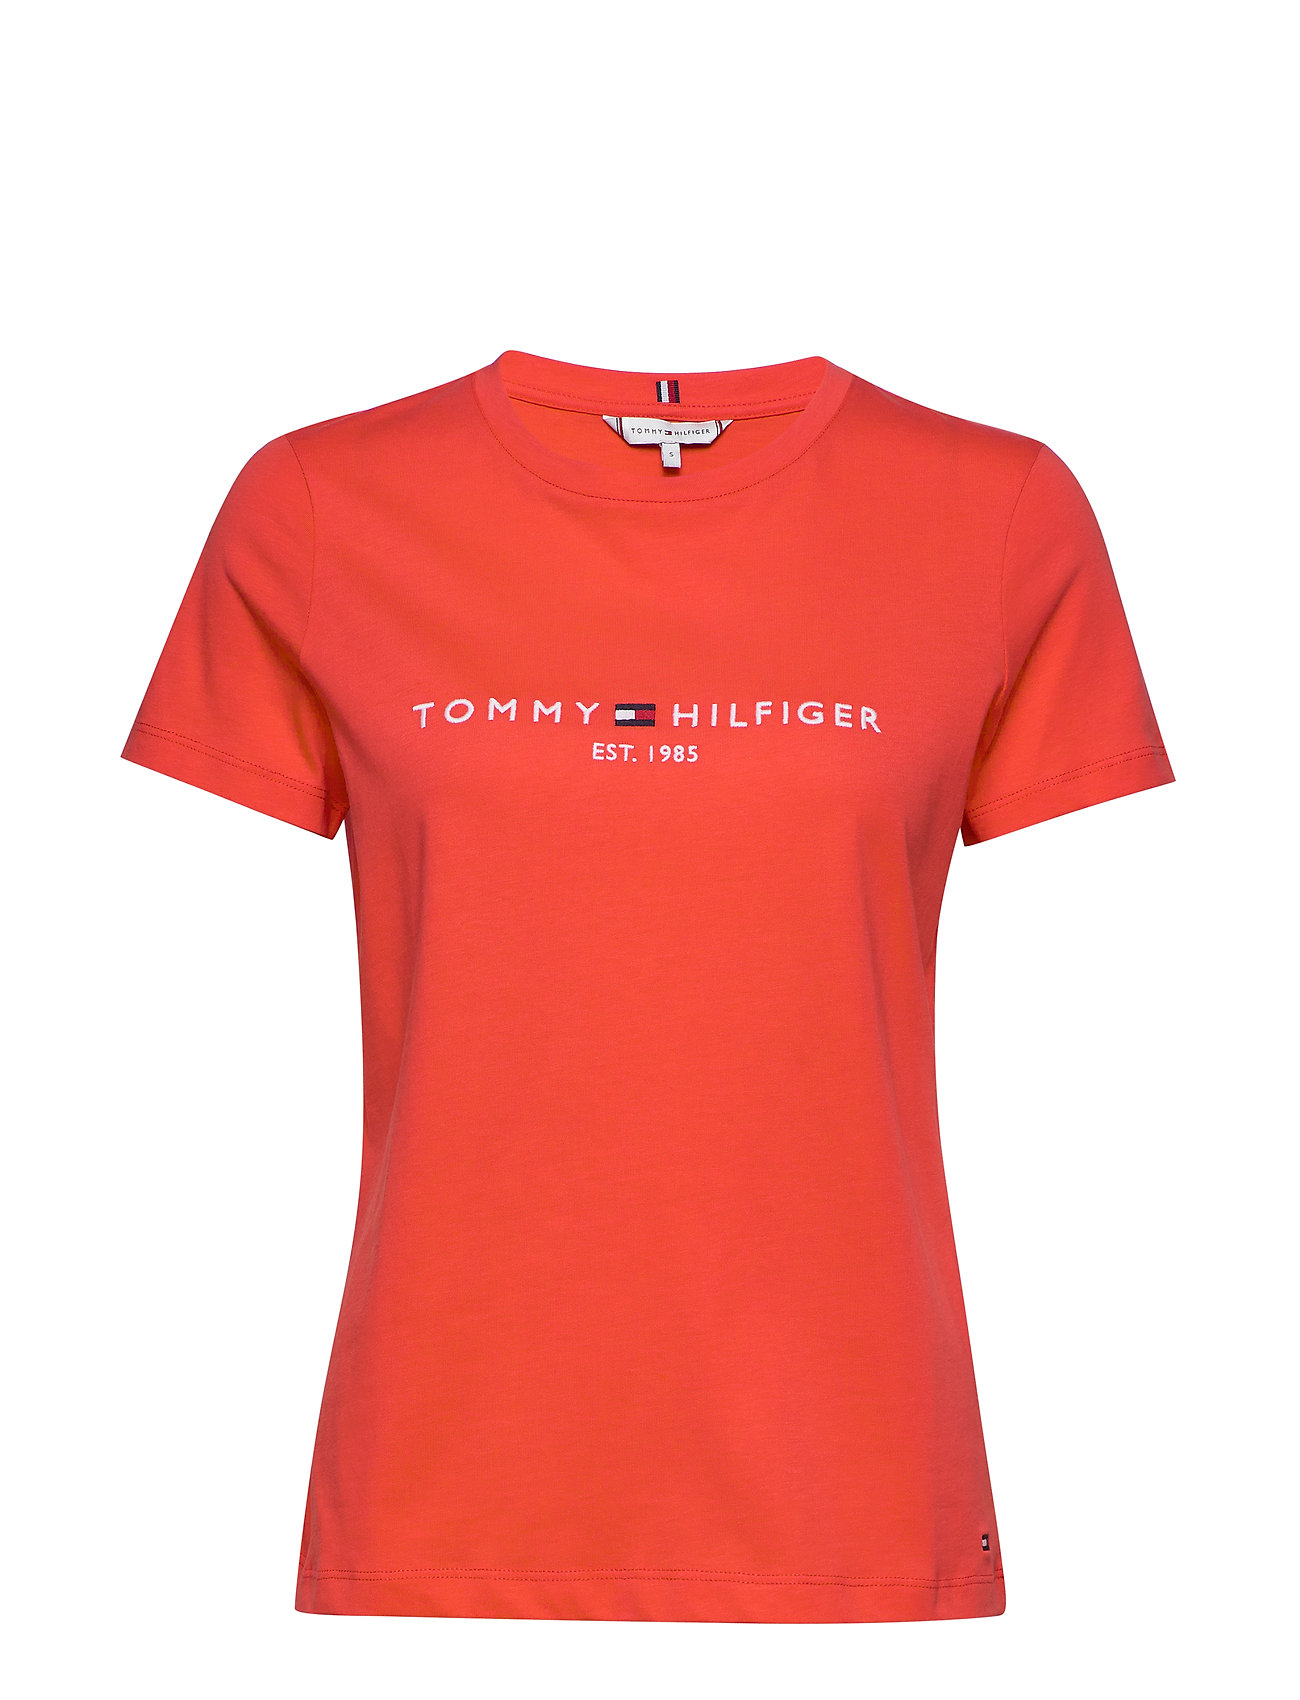 Tommy Hilfiger NEW TH ESS HILFIGER - BRIGHT VERMILLION